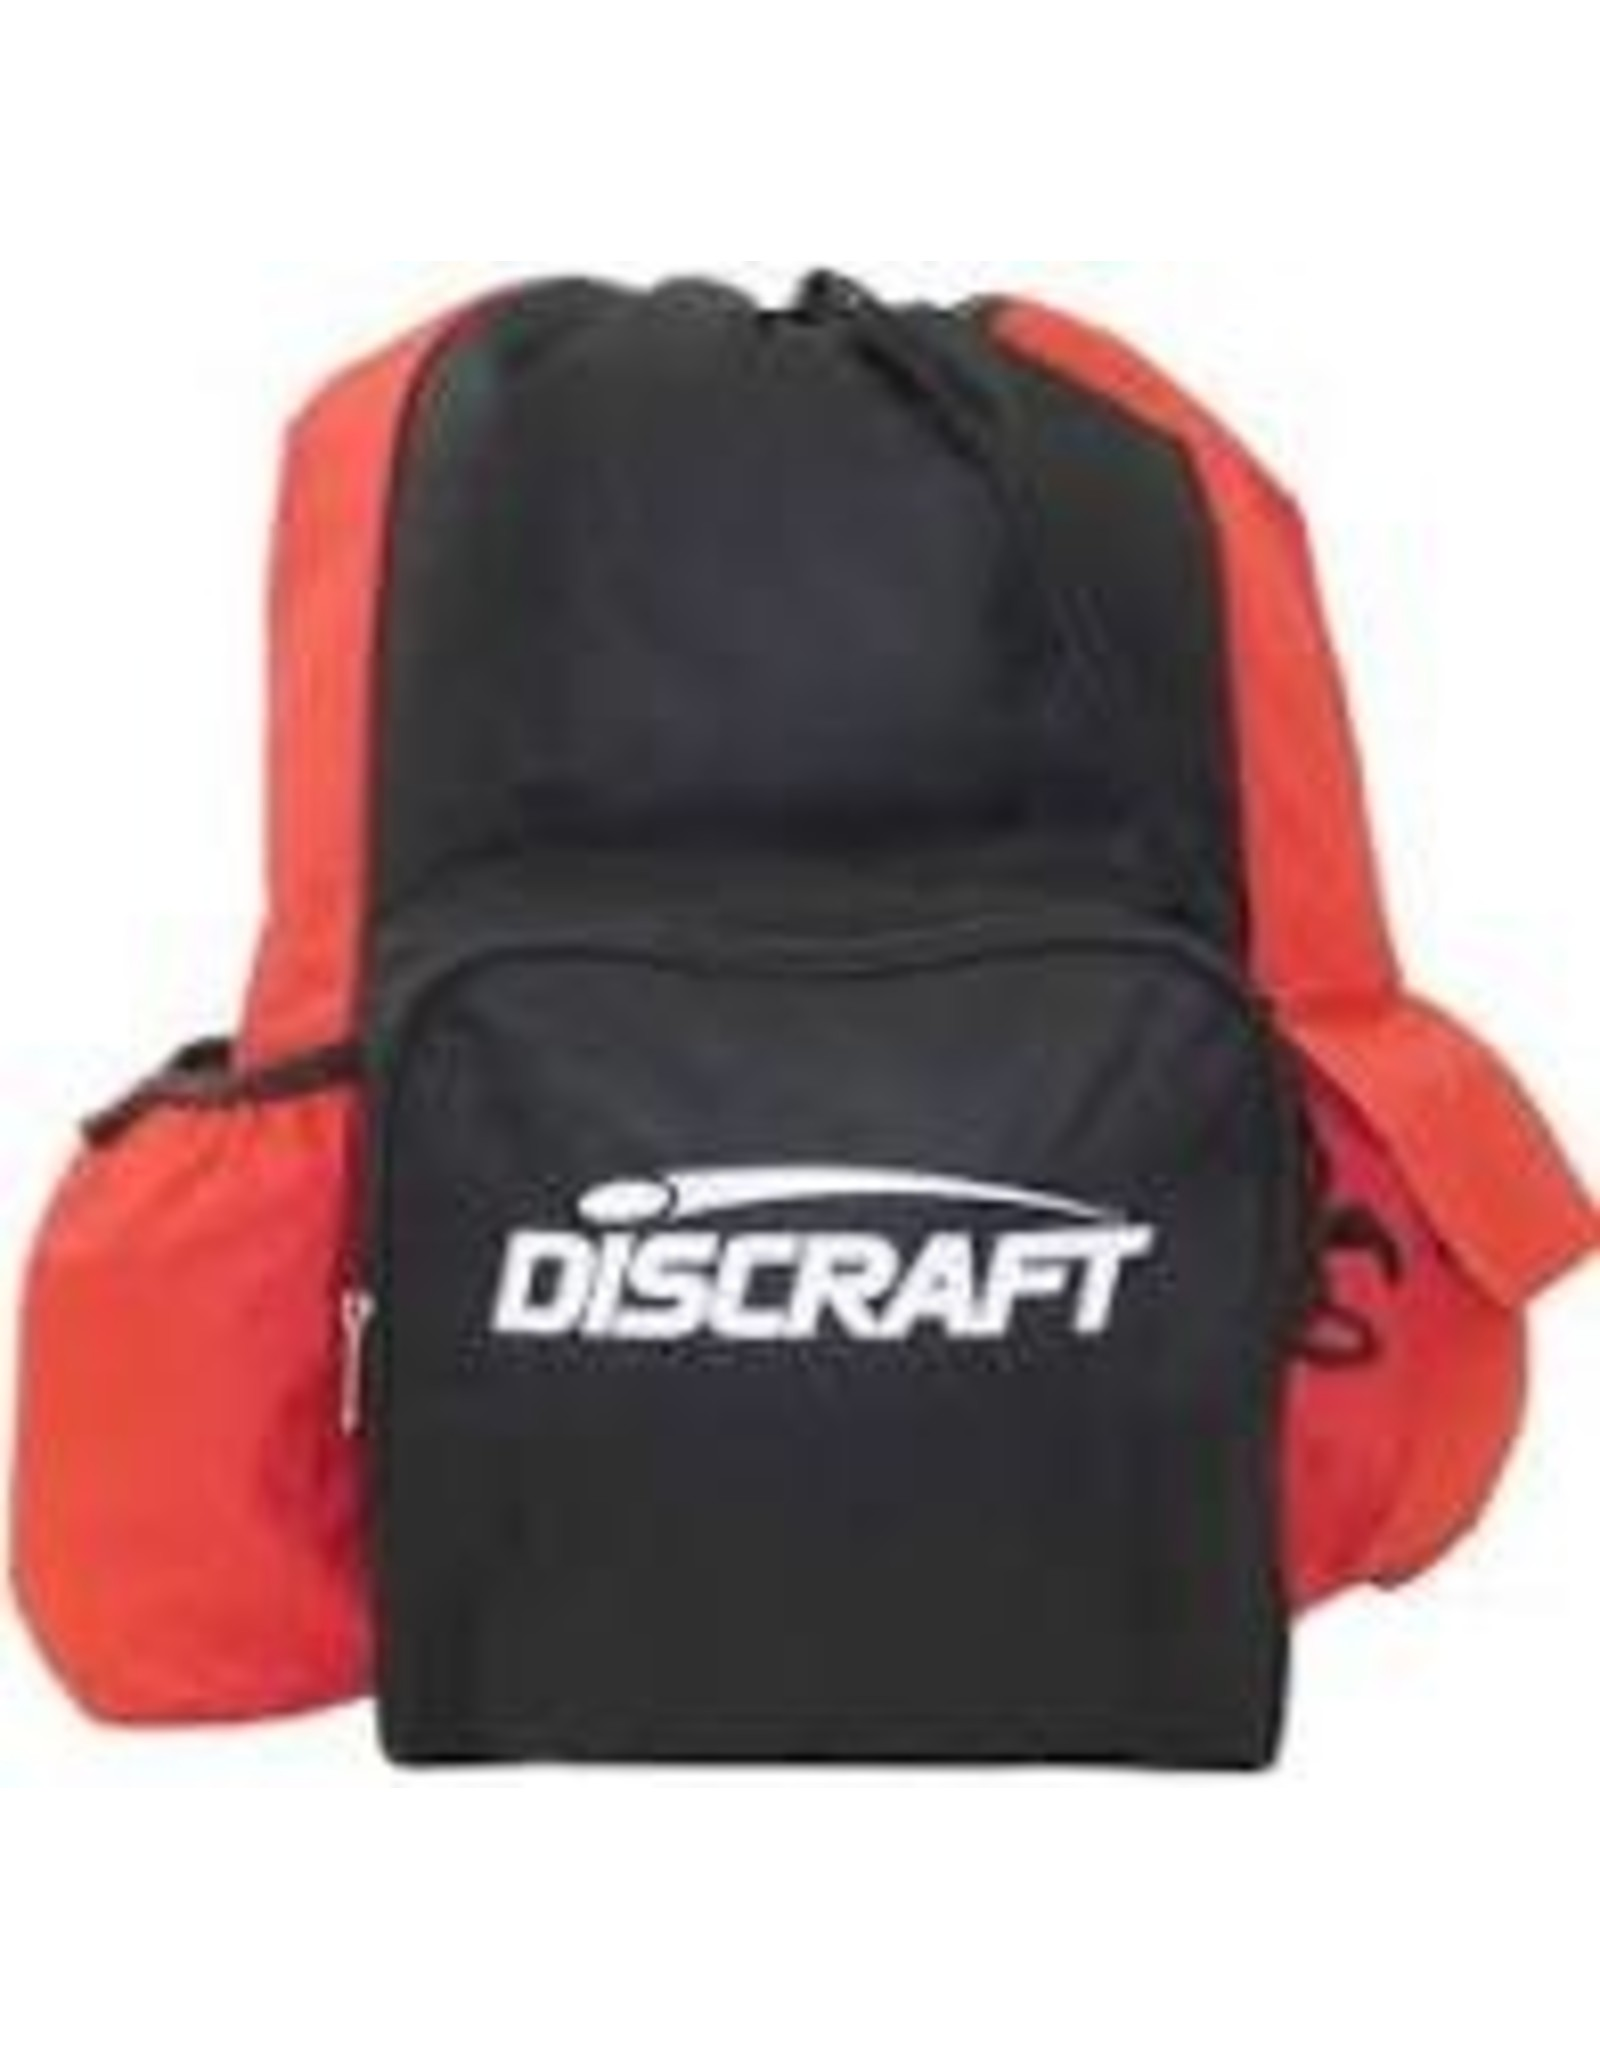 Discraft Draw String Golf Bag